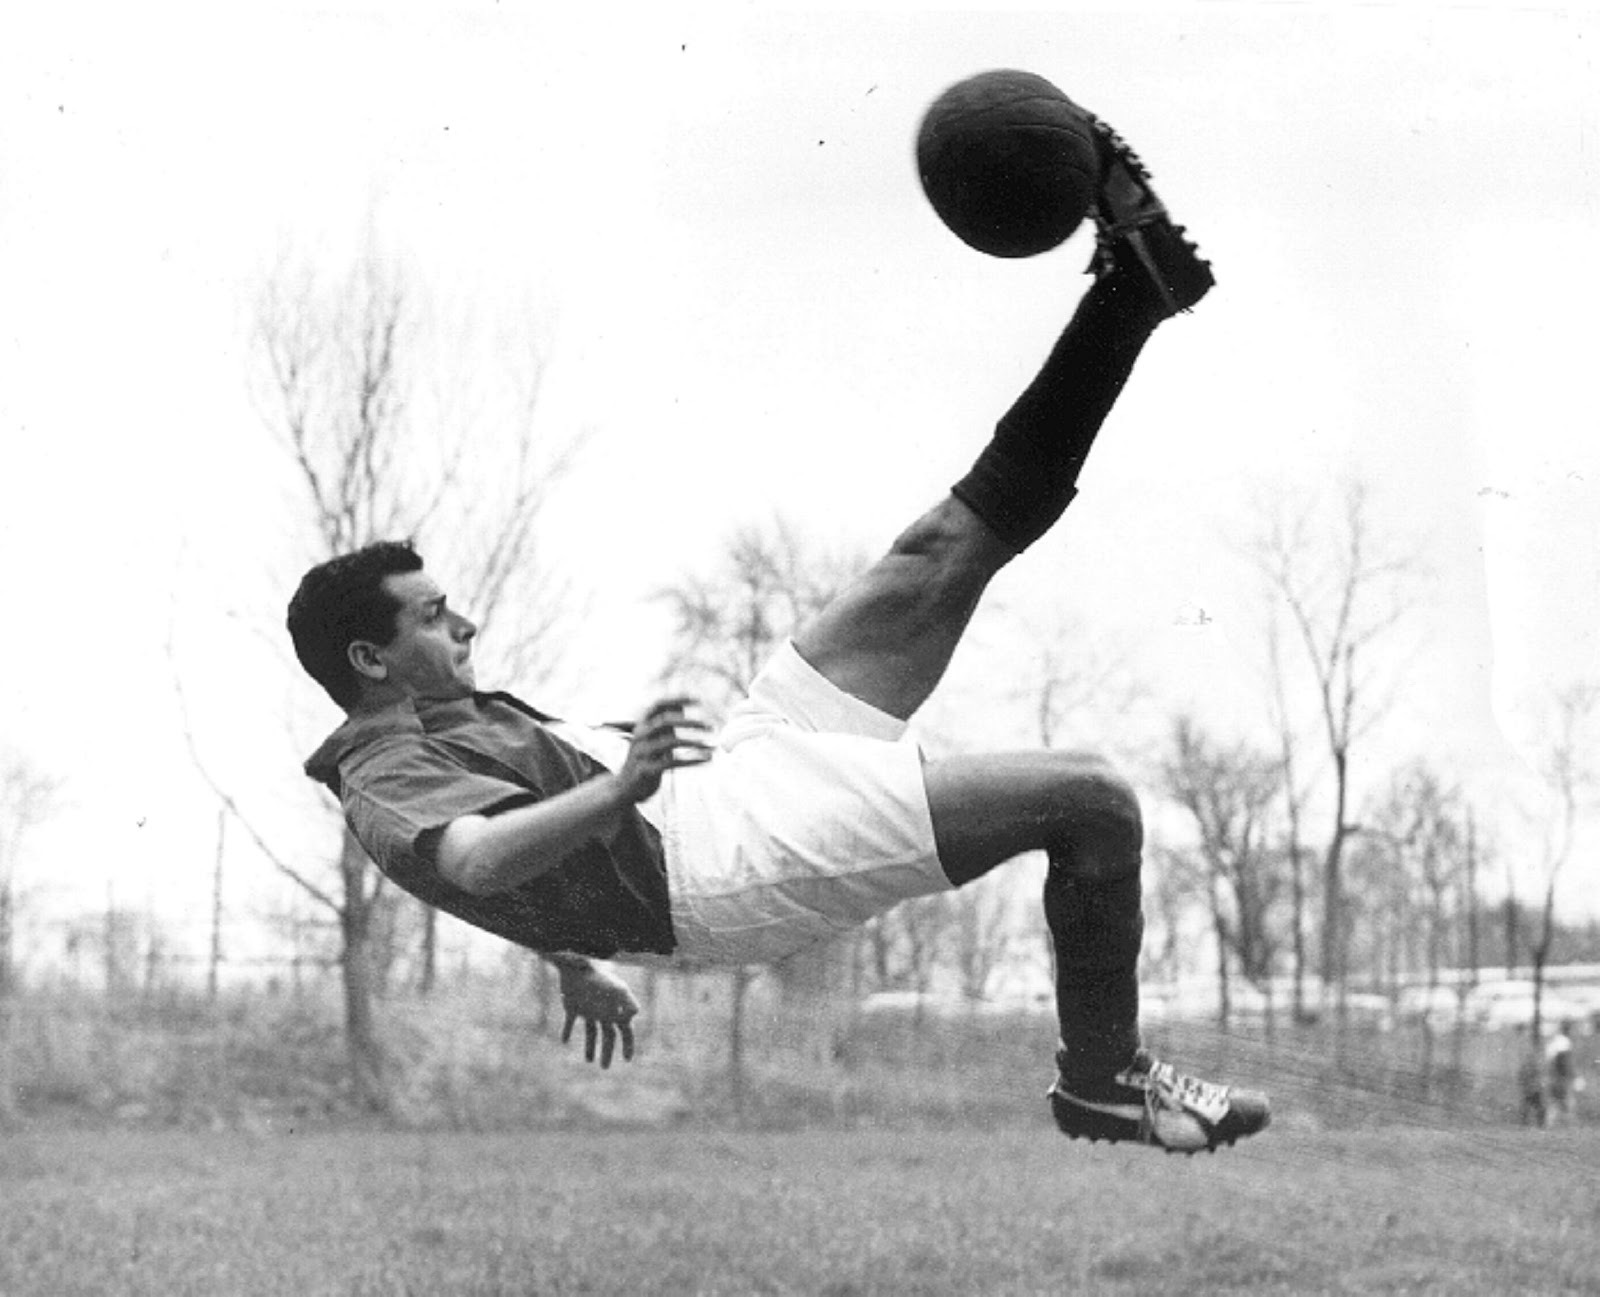 Overhead kick in black and white from history  (advanced soccer moves)